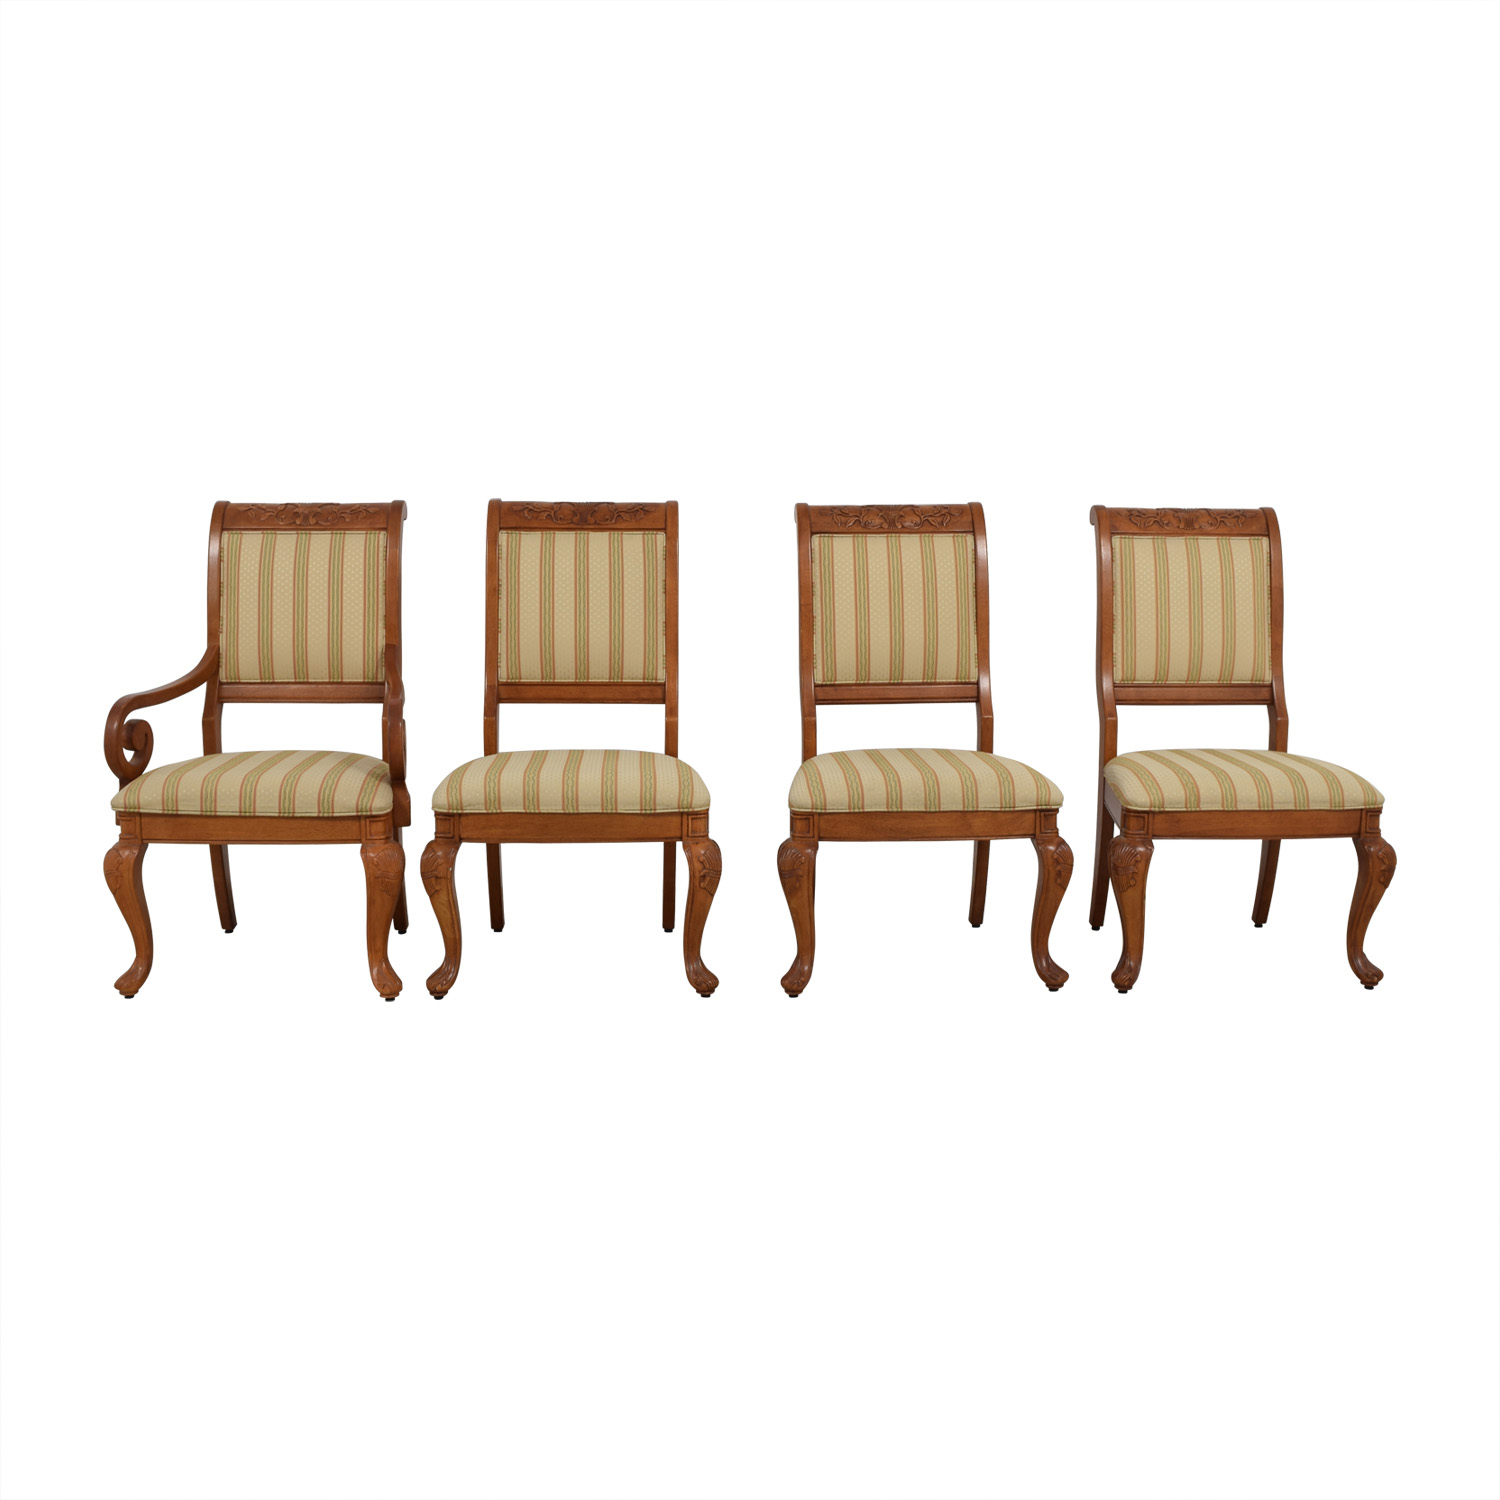 buy Furniture Masters Striped Upholstered Carved Dining Chairs Furniture Masters Dining Chairs